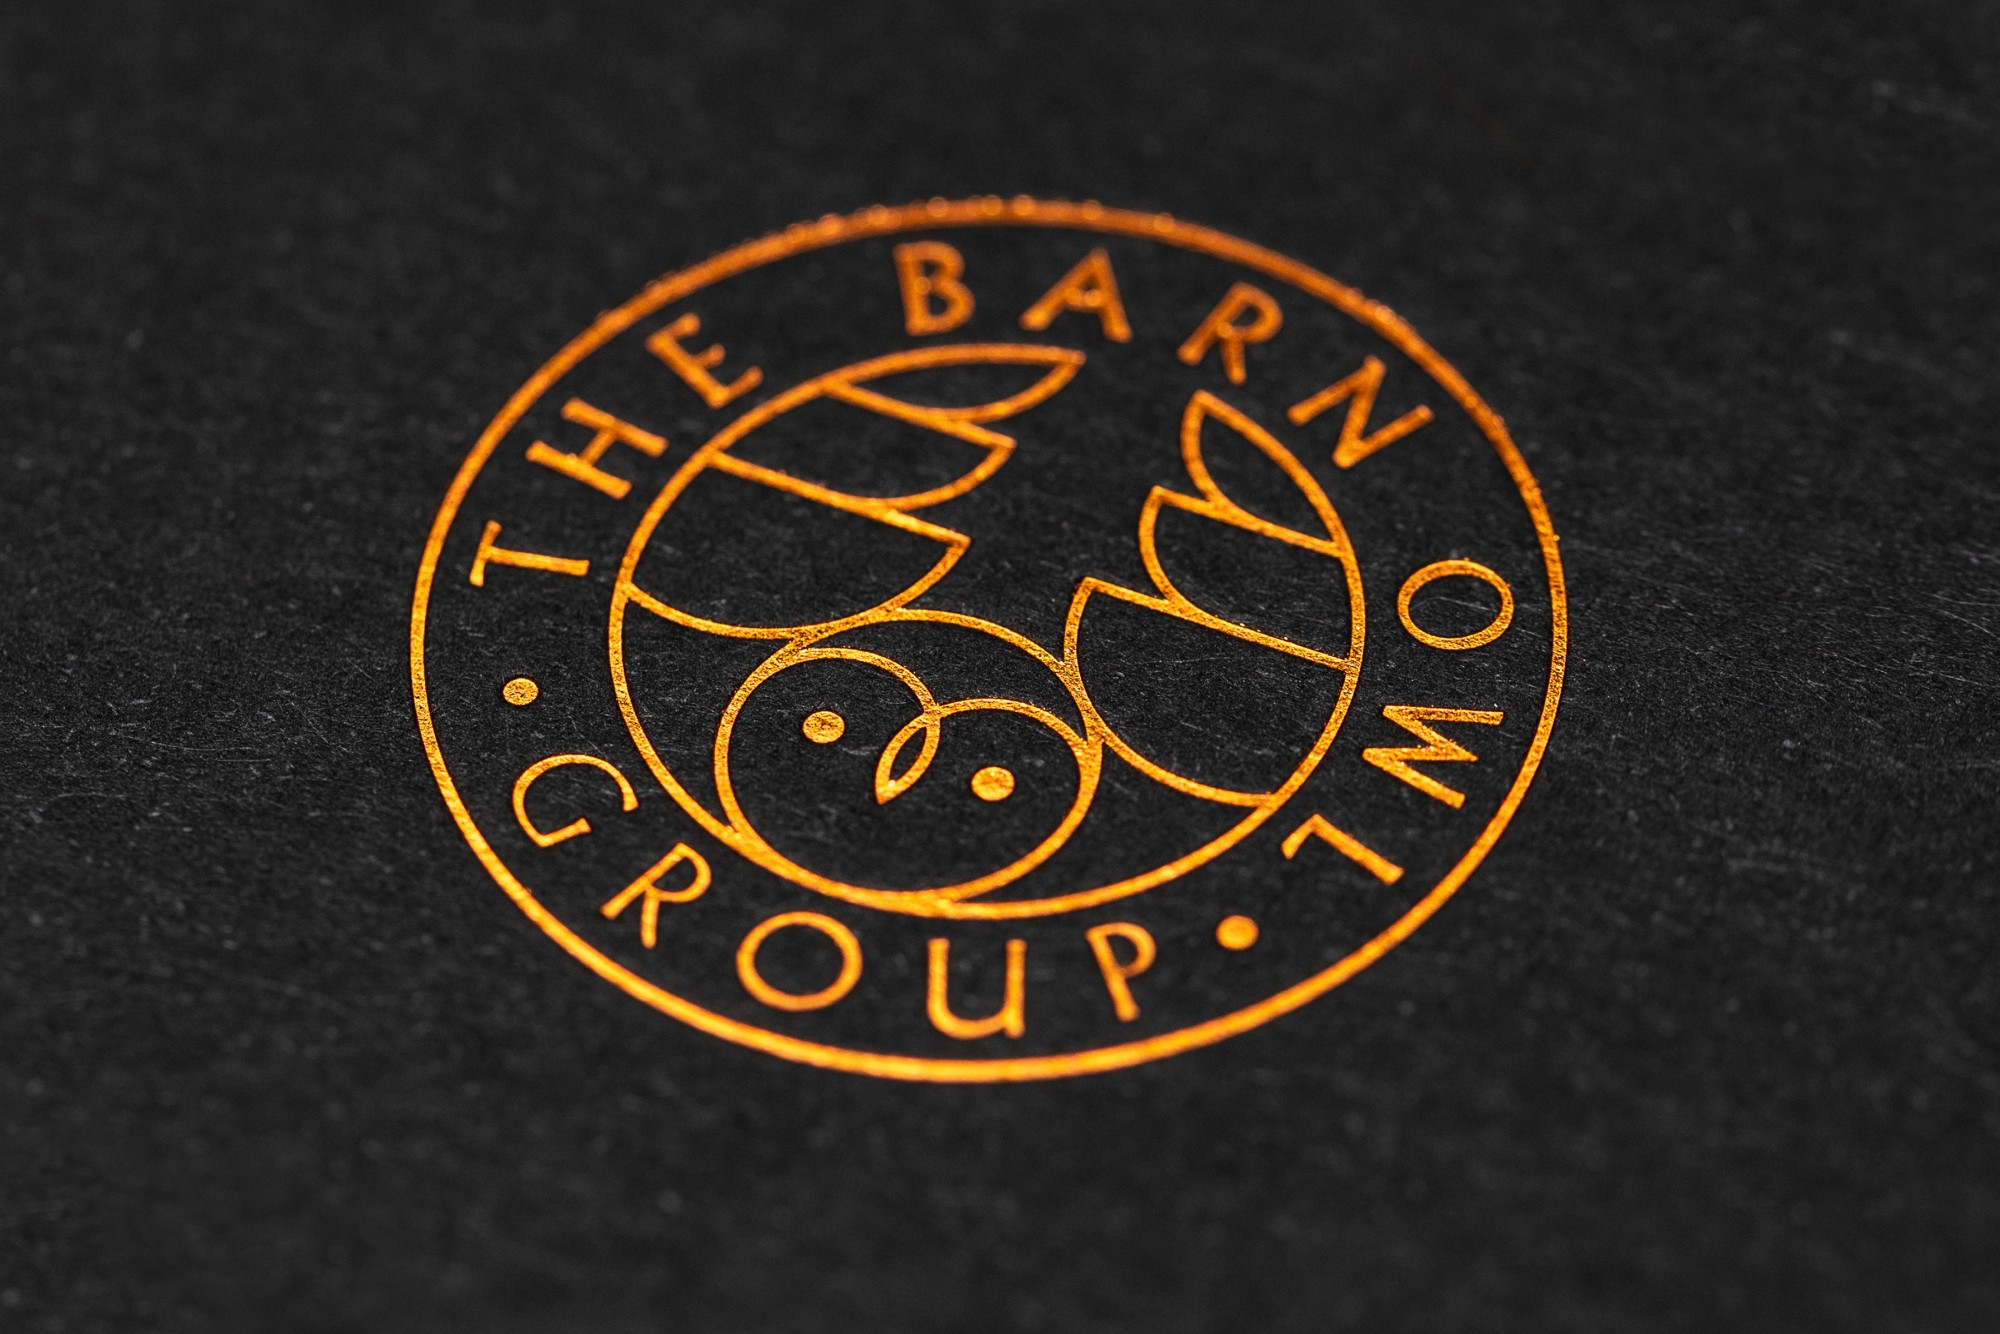 Cover image: The Barn Owl Group Identity